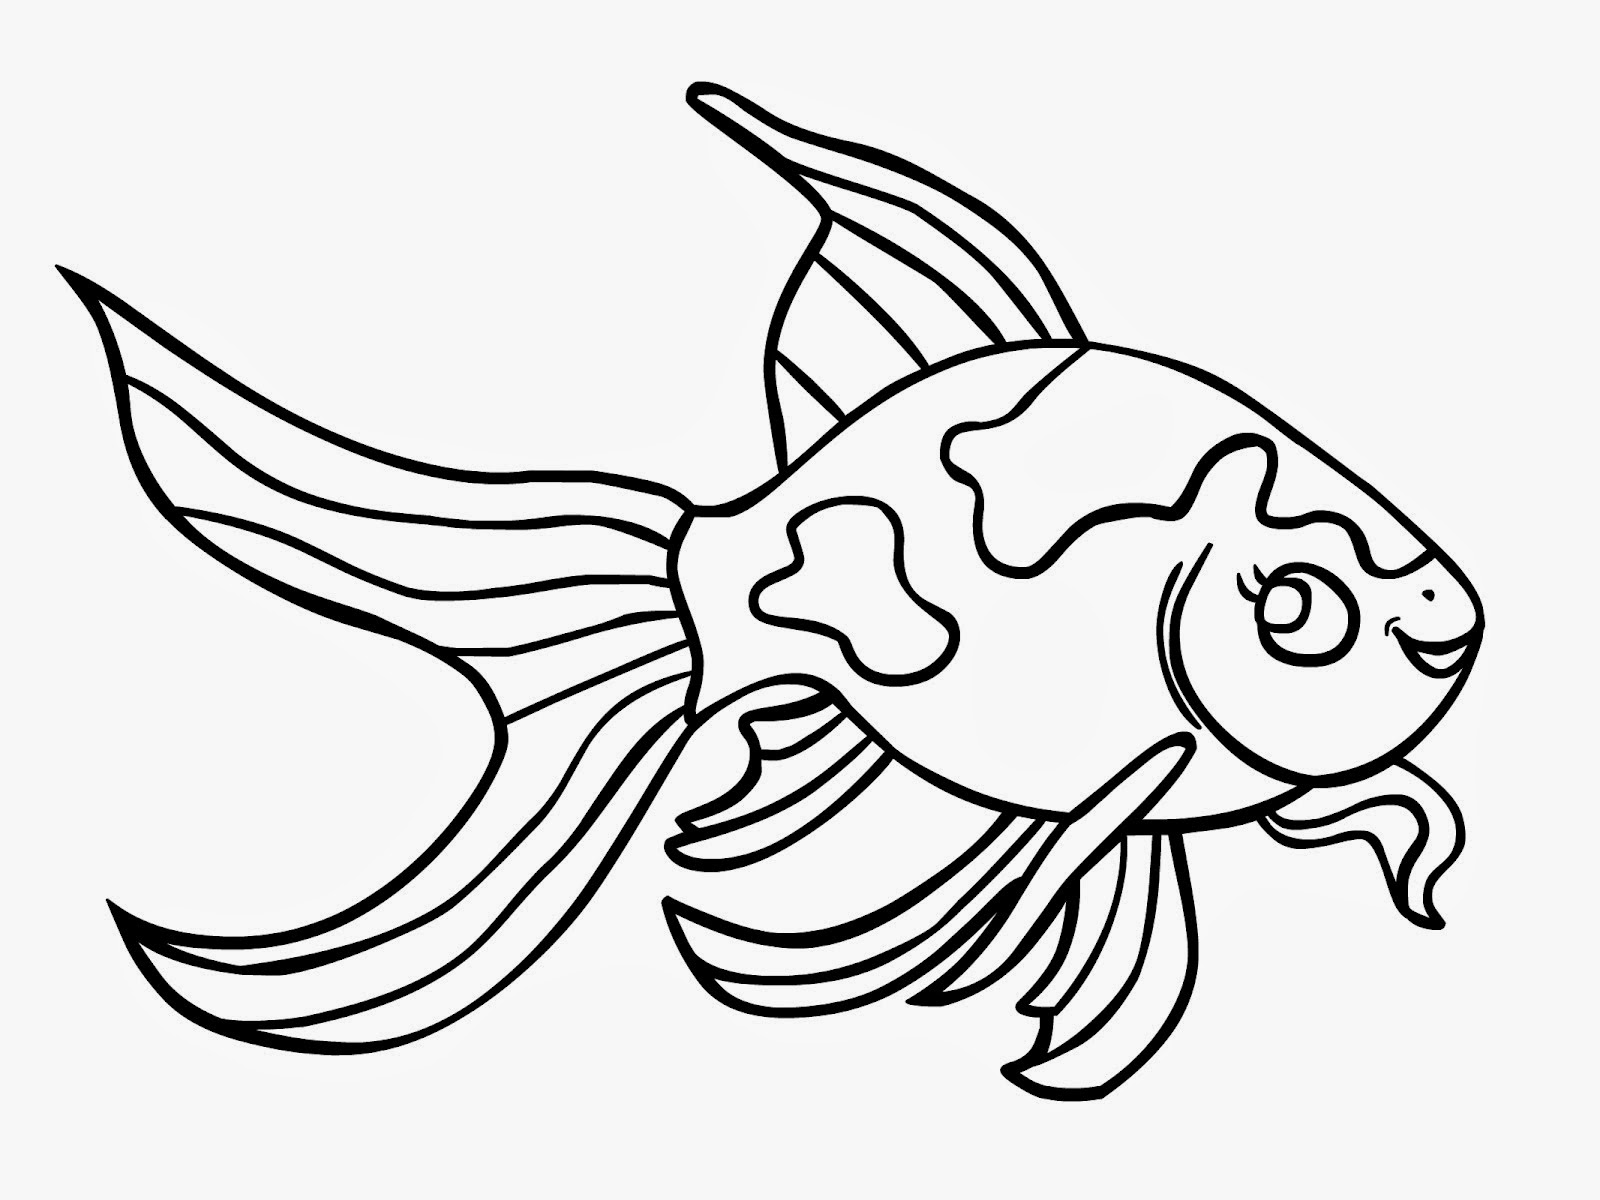 Free coloring pages fish - Cool Clown Colouring Pages Free Printable Pages For Kids Coloring With Rainbow Trout Coloring Page